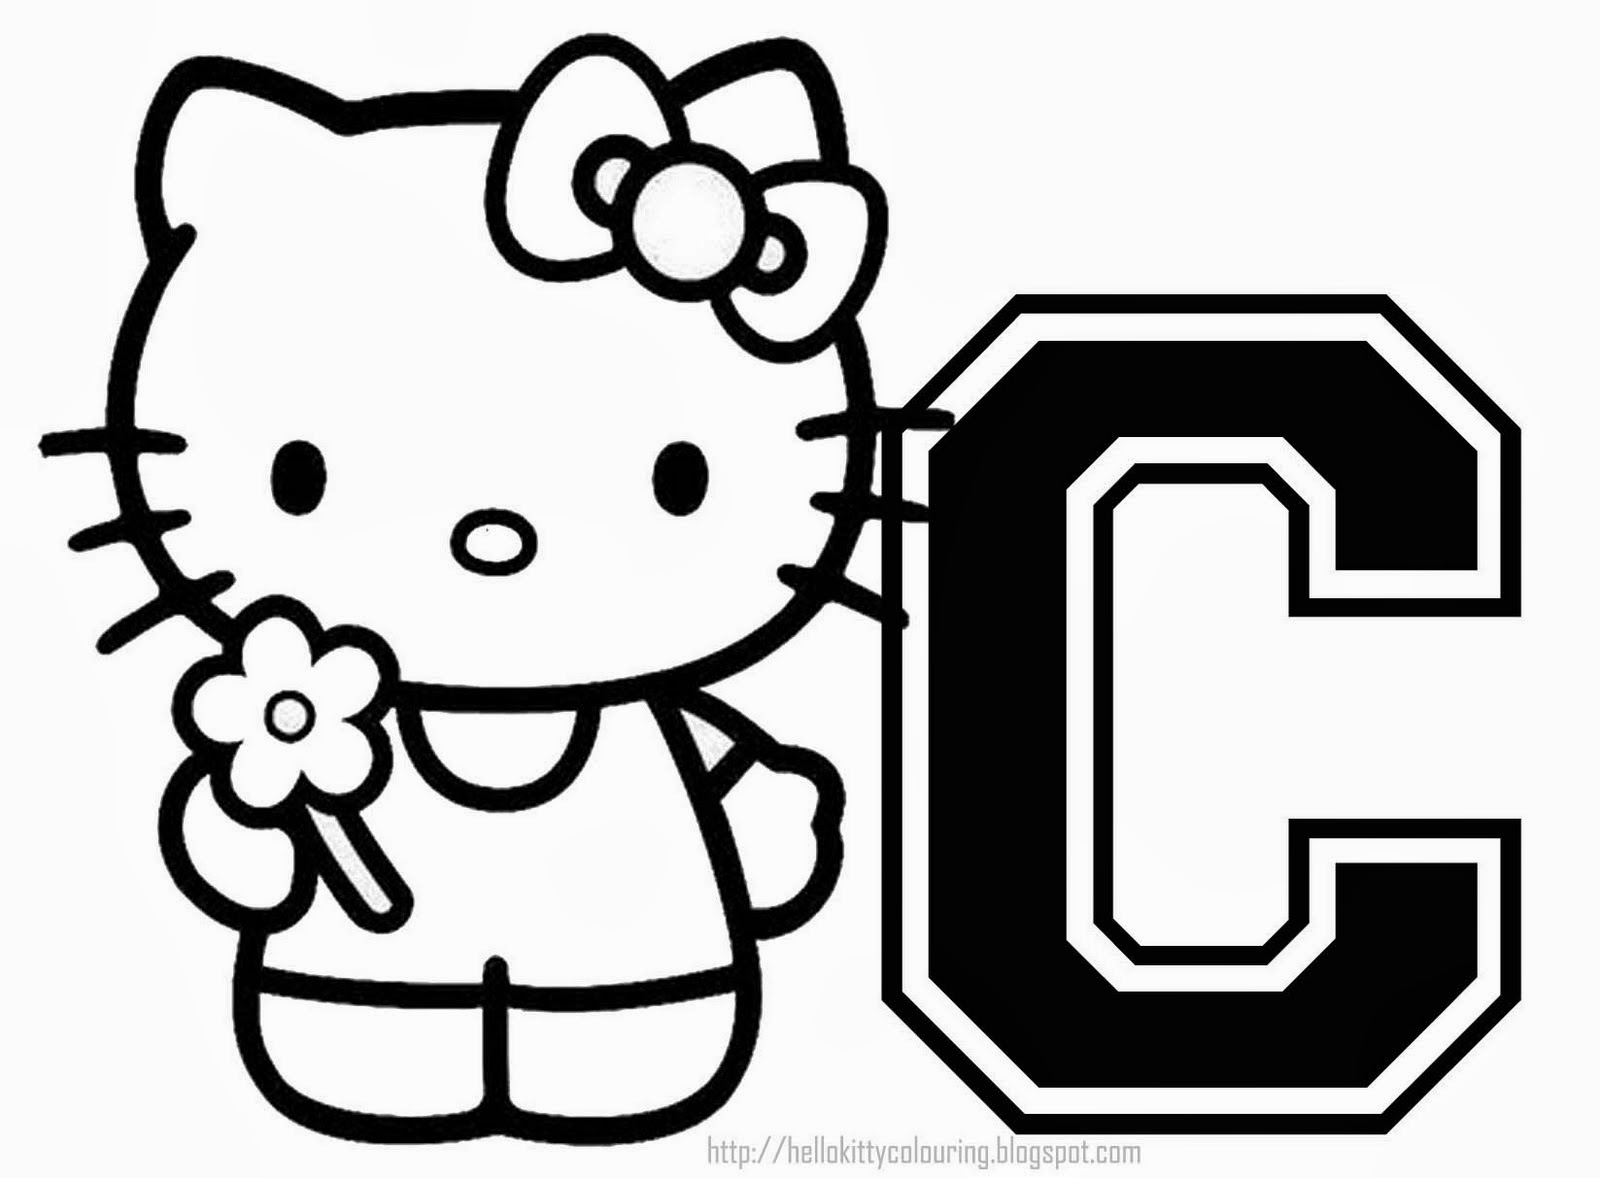 Alfabeto de Hello Kitty para Colorear. | Oh my Alfabetos!